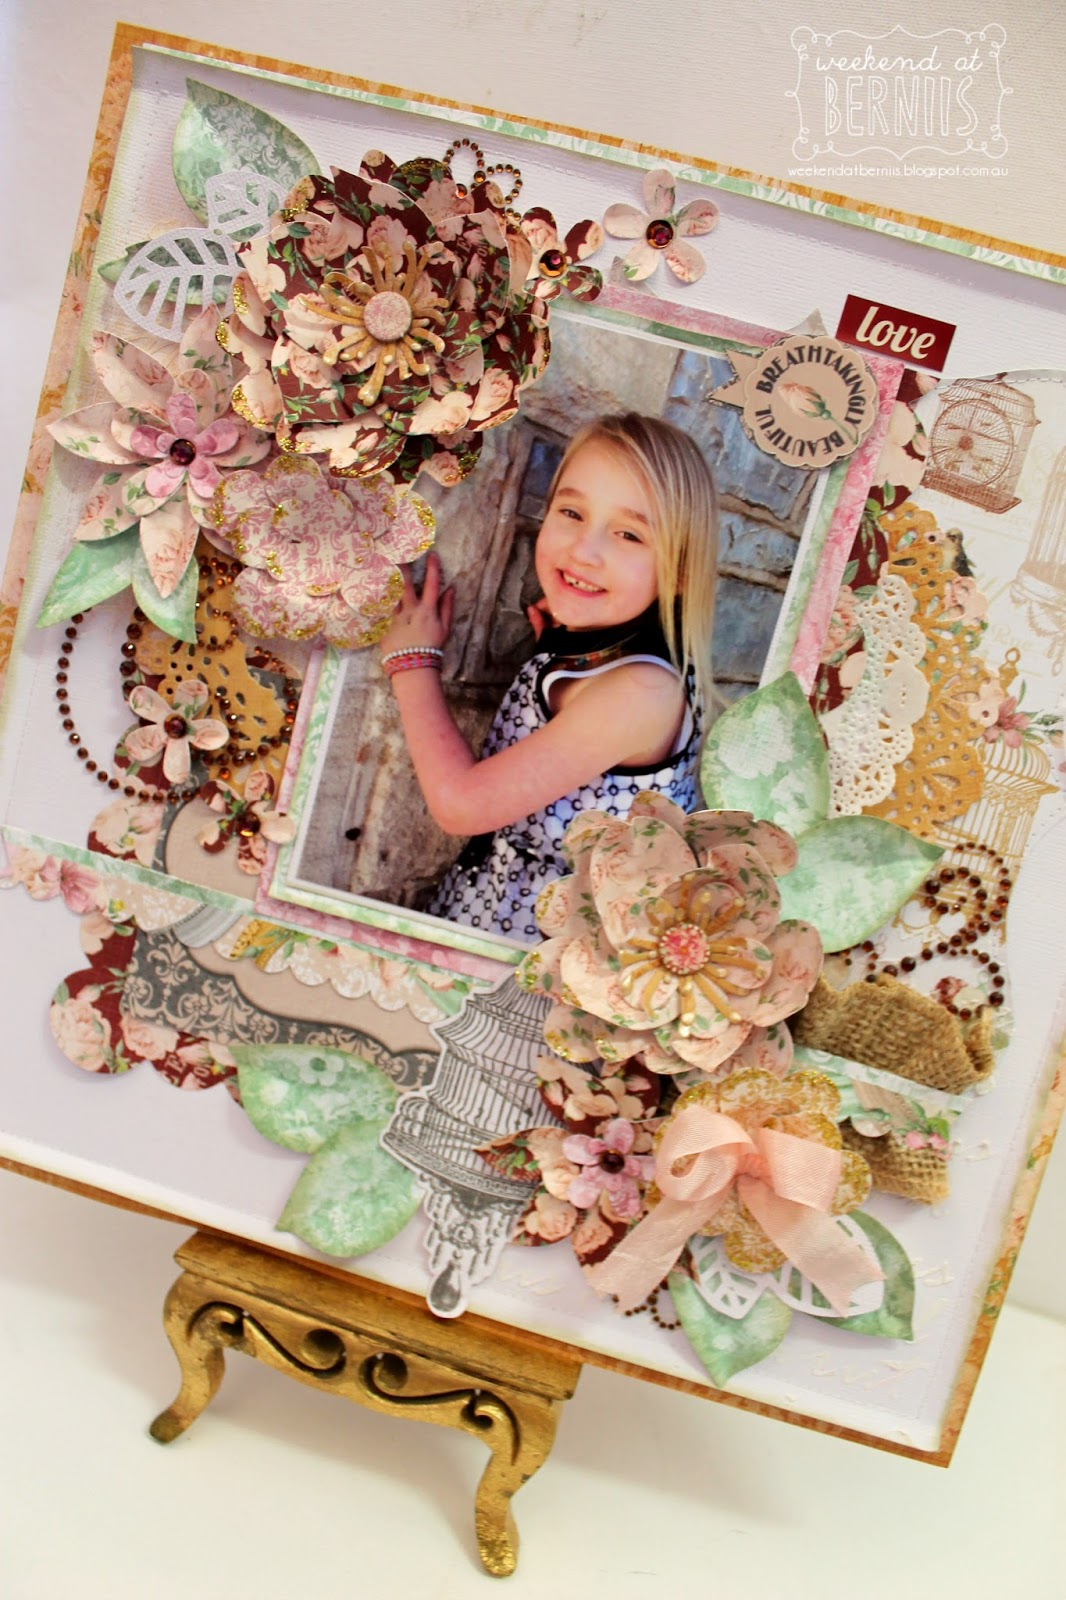 Breathtakingly Beautiful layout by Bernii Miller using the BoBunny Madeline Collection